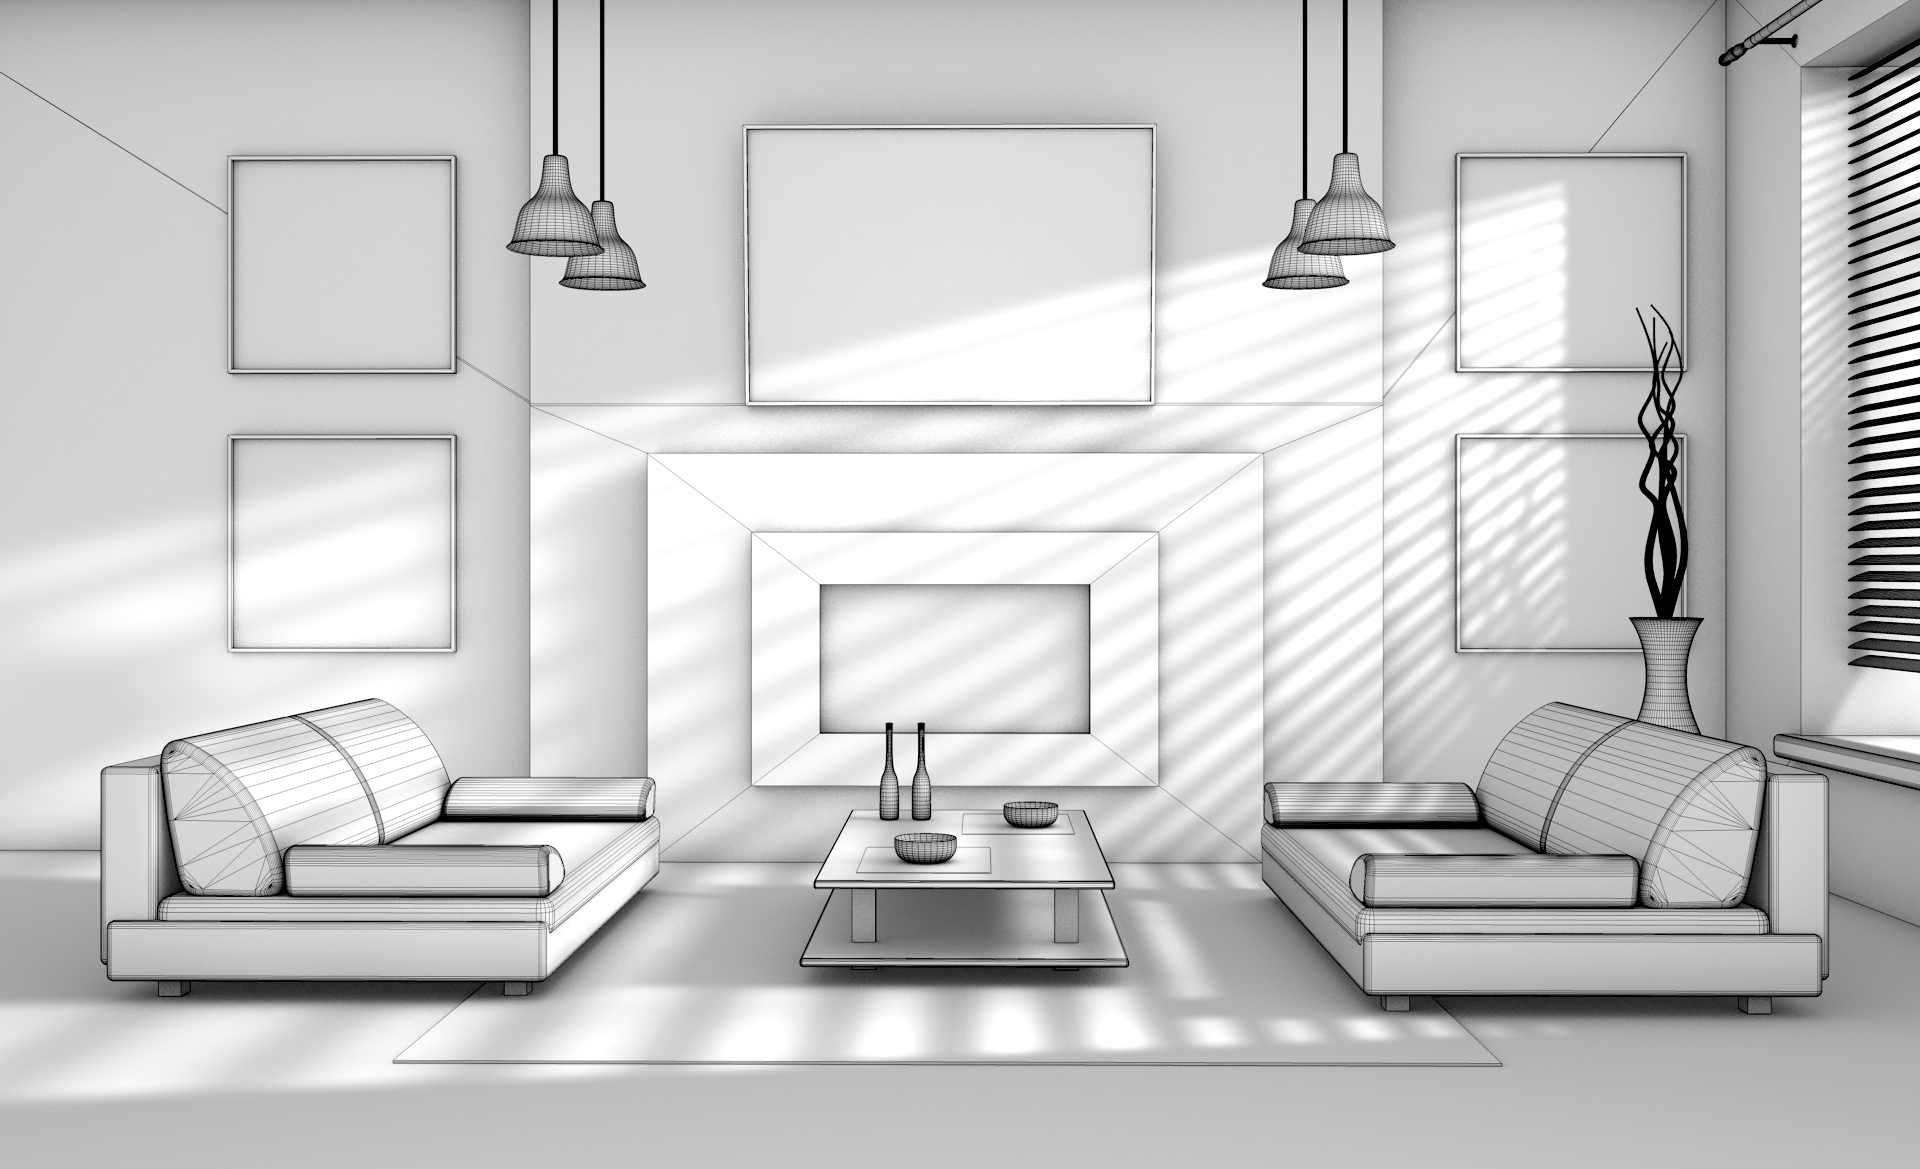 Interior design 3D model - Polygonal mesh of daylight version